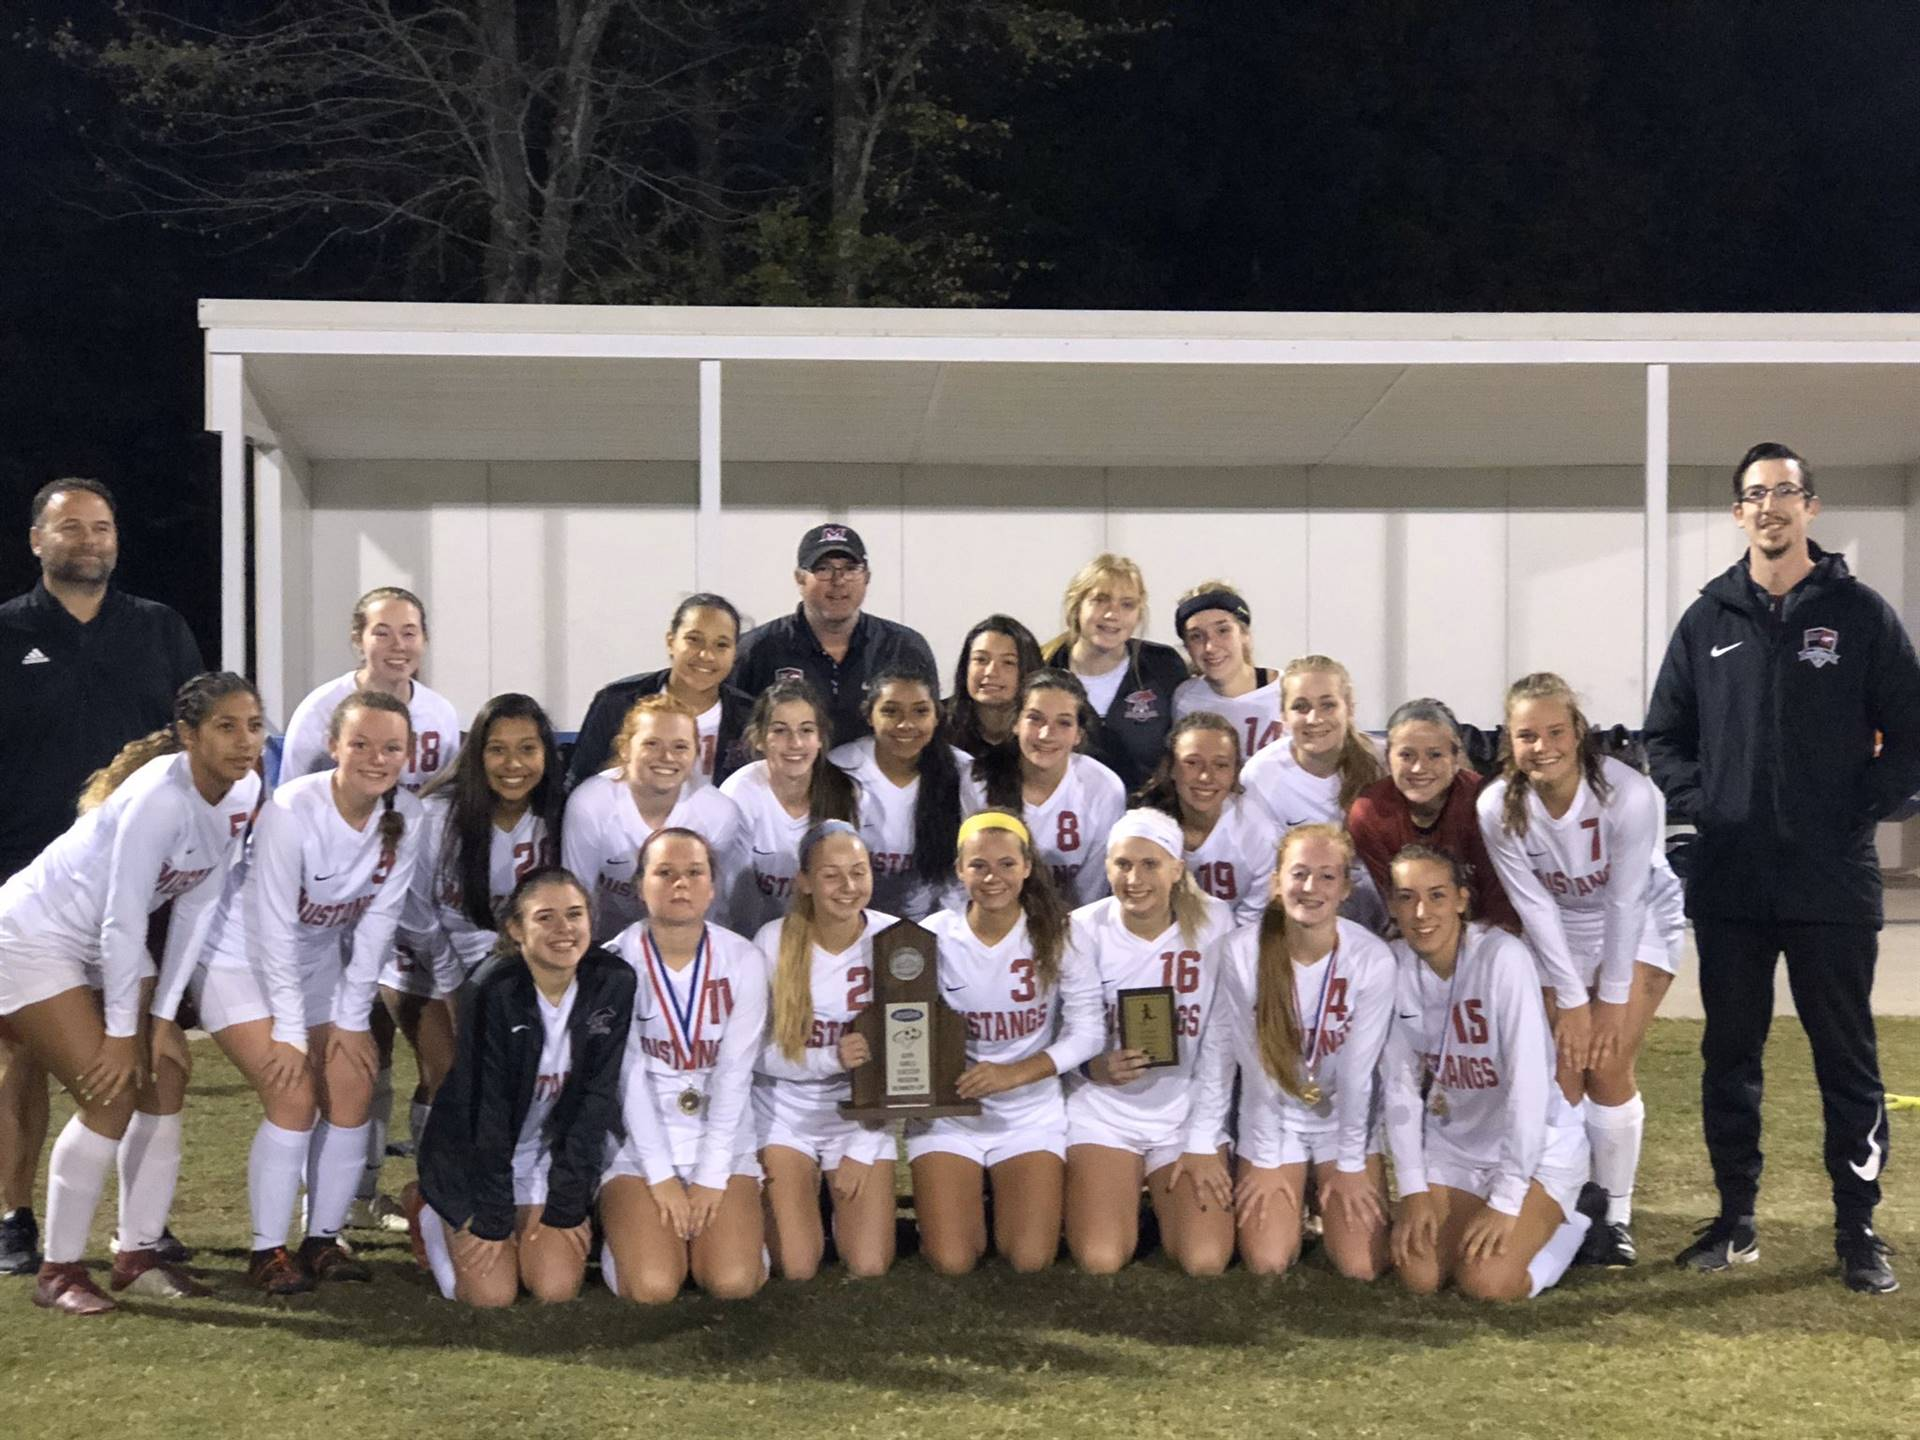 Mustangs Women's Soccer - 2019 Region Runner-Up!